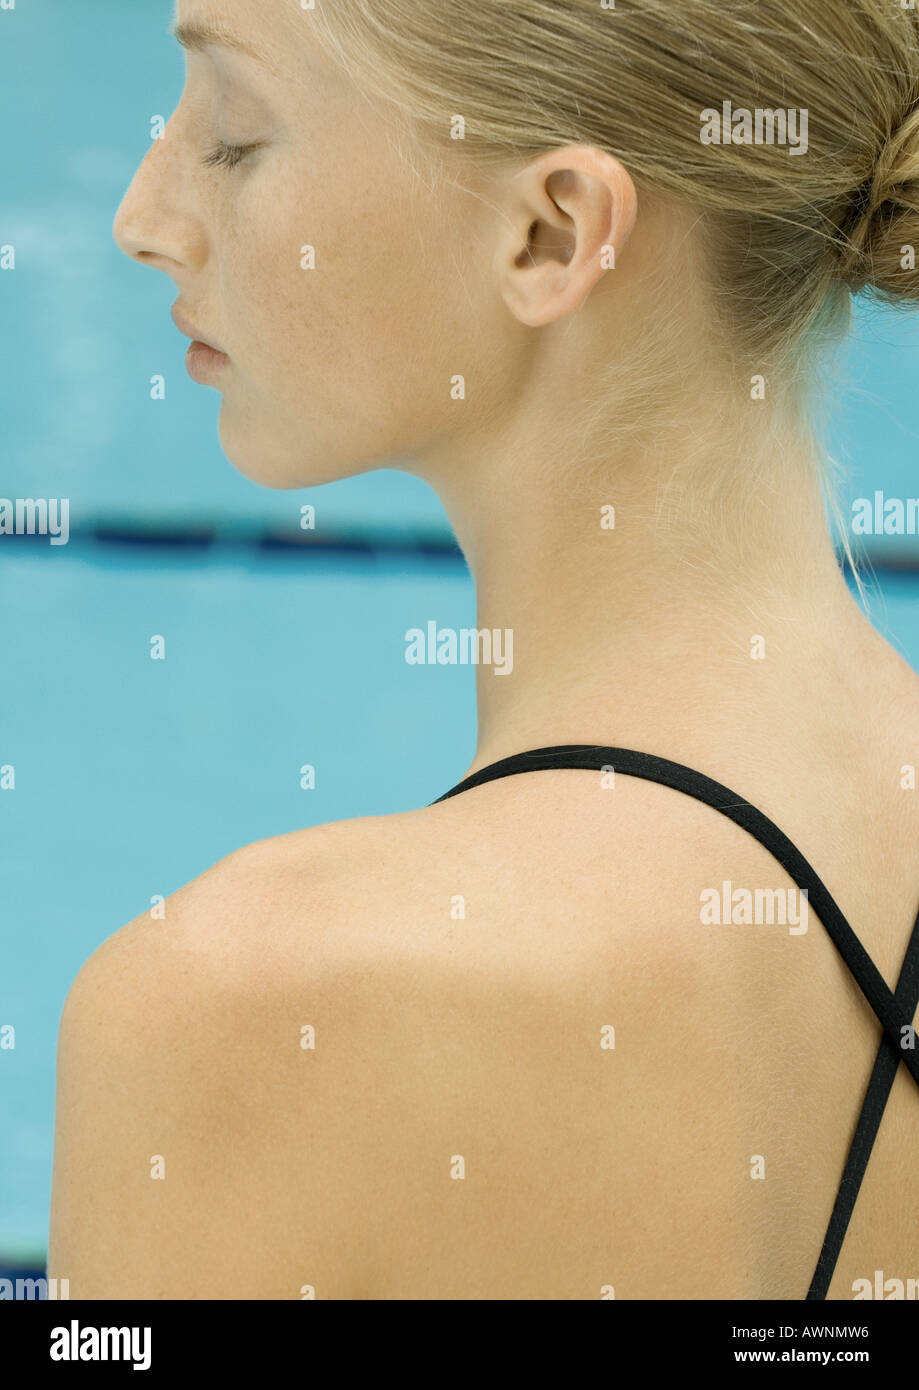 Woman by pool, close-up of shoulder - Stock Image